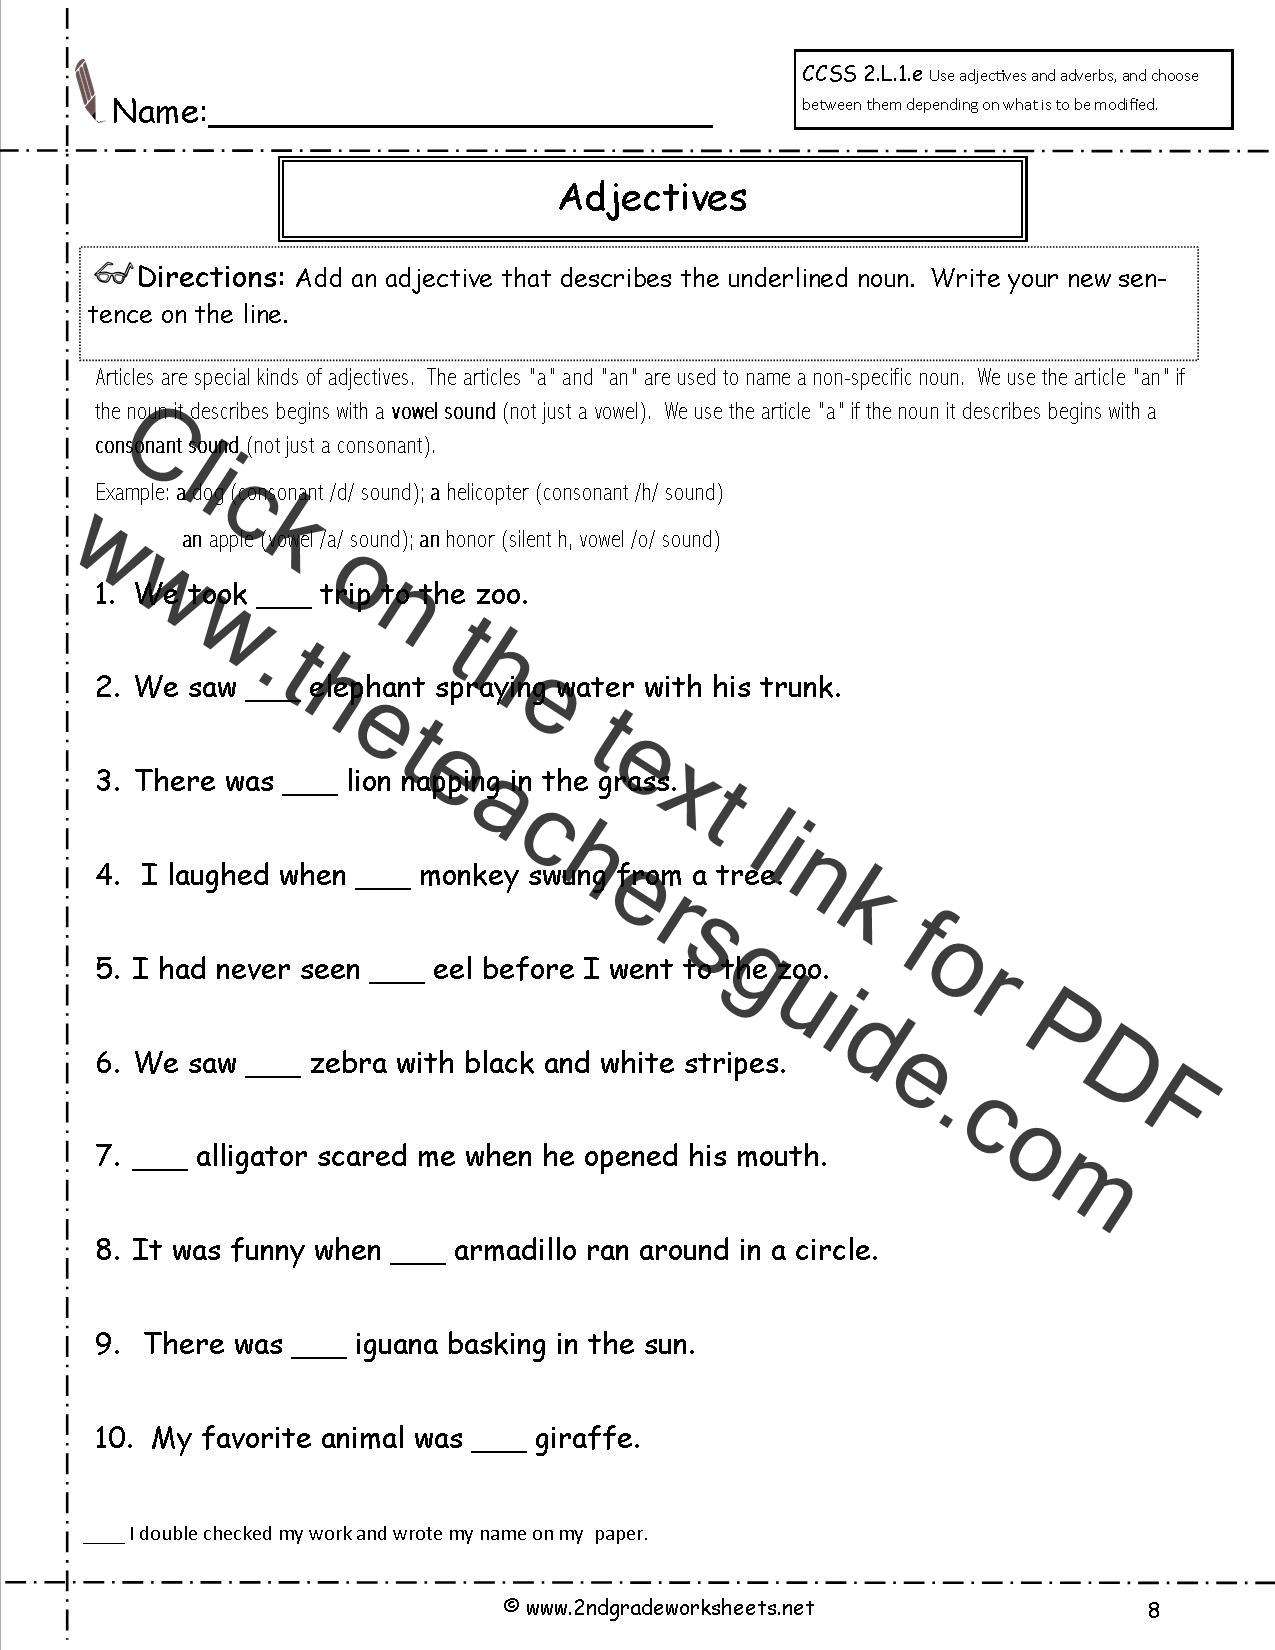 Worksheets Free Language Worksheets free languagegrammar worksheets and printouts adjectives worksheets